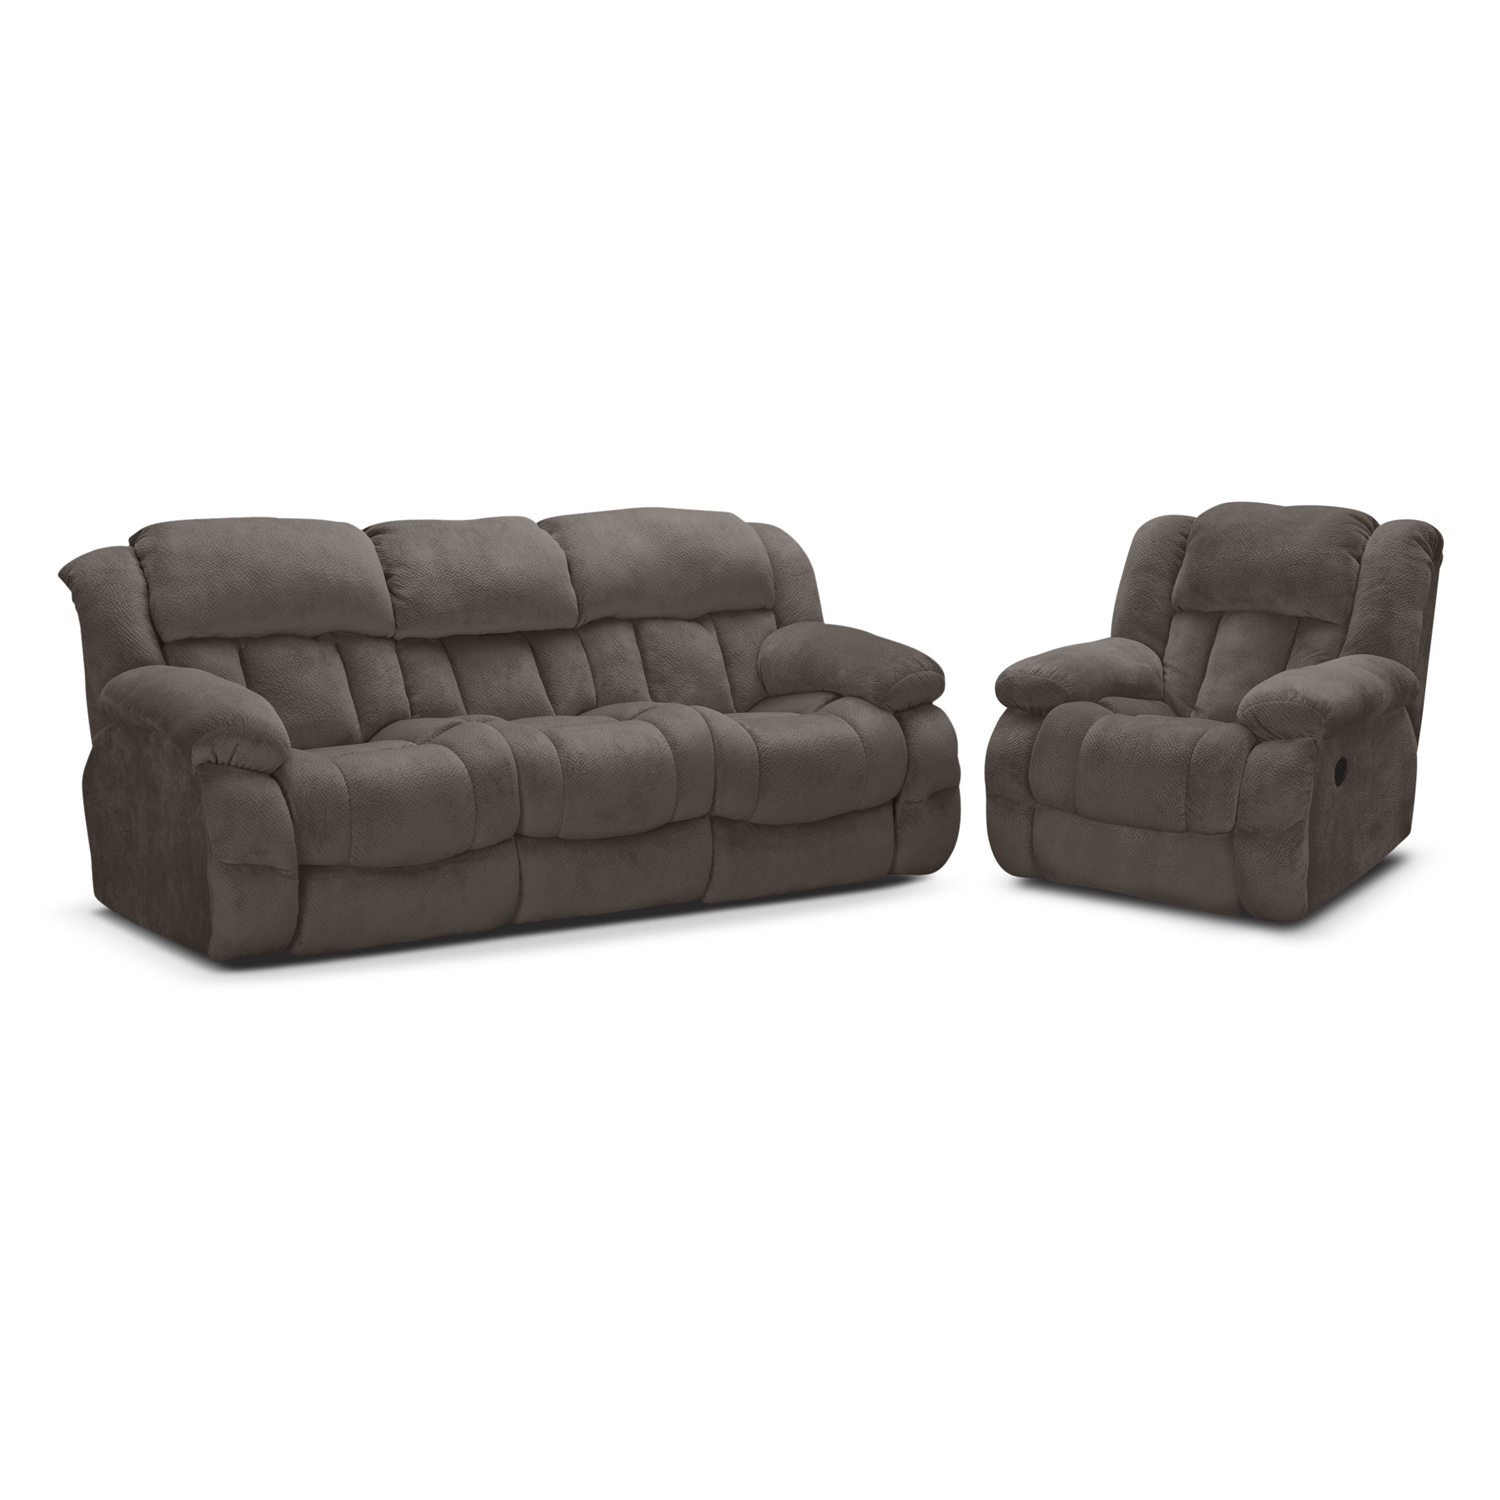 Living Room Furniture - Park City 2 Pc. Reclining Living Room w/Glider Recliner